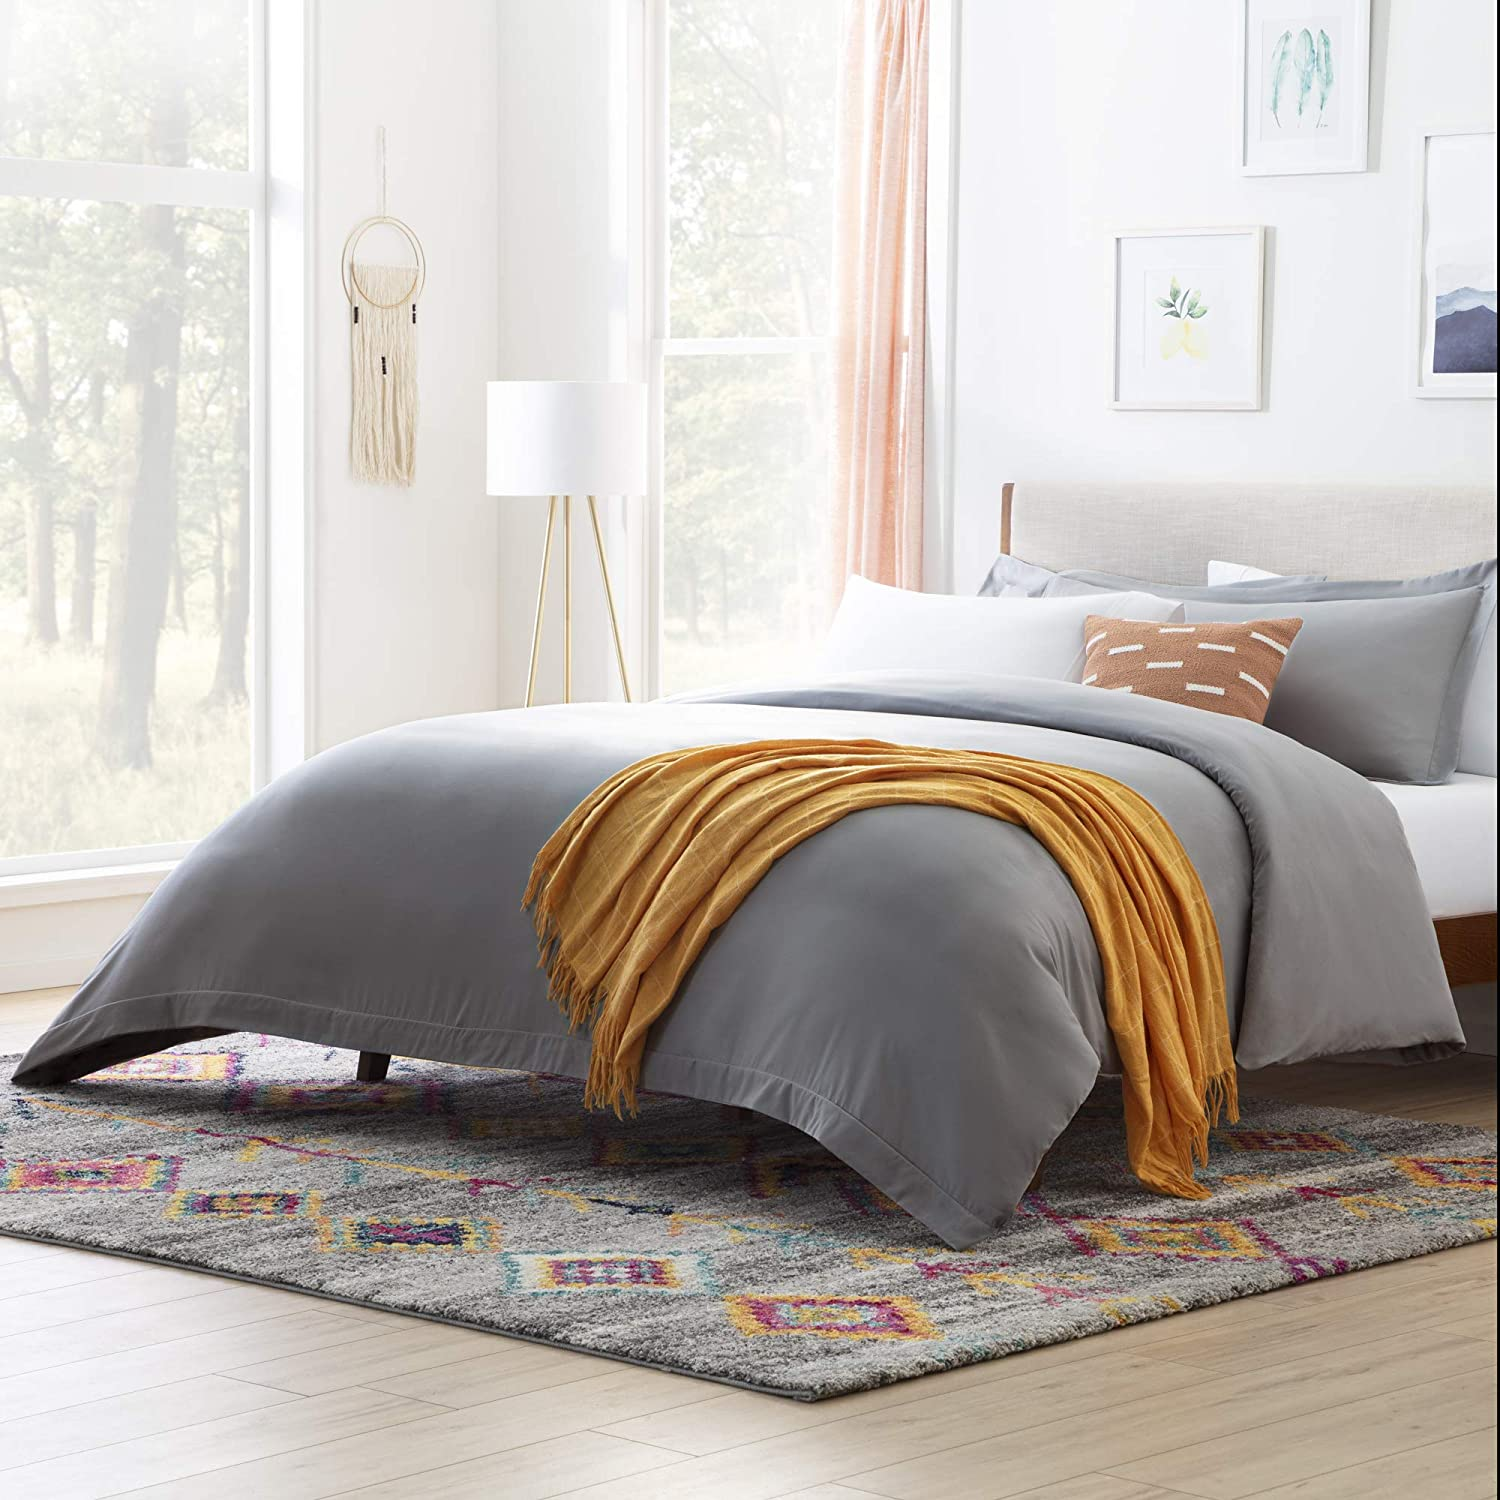 Linenspa Microfiber Duvet Cover - Three Piece Set Includes Duvet Cover and Two Shams - Soft Brushed Microfiber - Hypoallergenic, Full